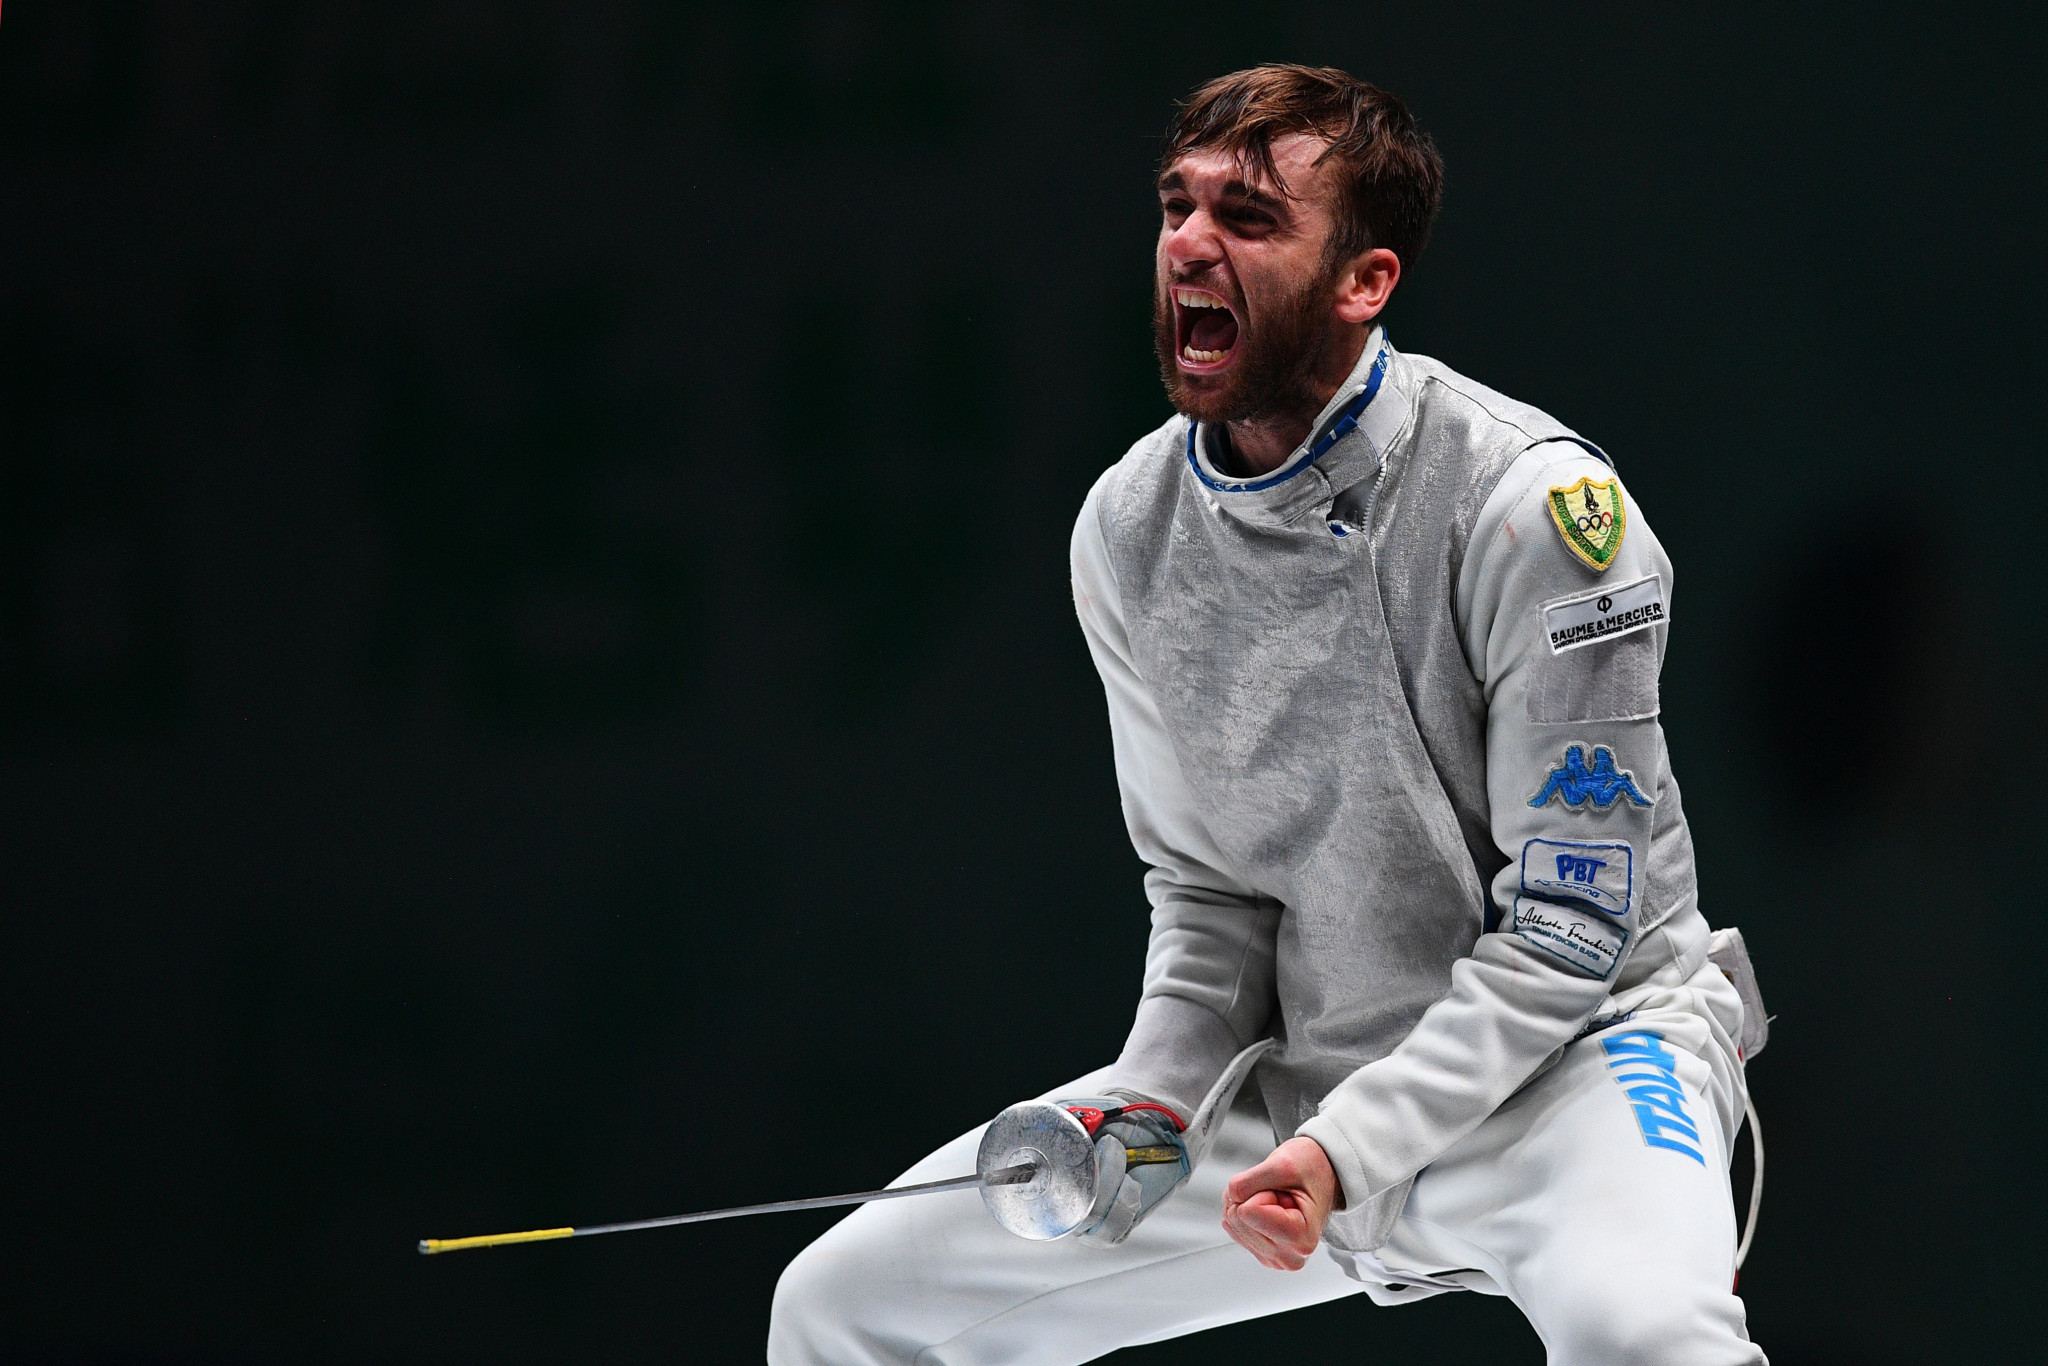 America's Philip Shin will face Italy's Olympic champion Daniele Garozzo in the main round of the FIE Foil Grand Prix in Anaheim after beating Austria's Mortiz Lechner and team-mate Brian Kaneshige ©Getty Images